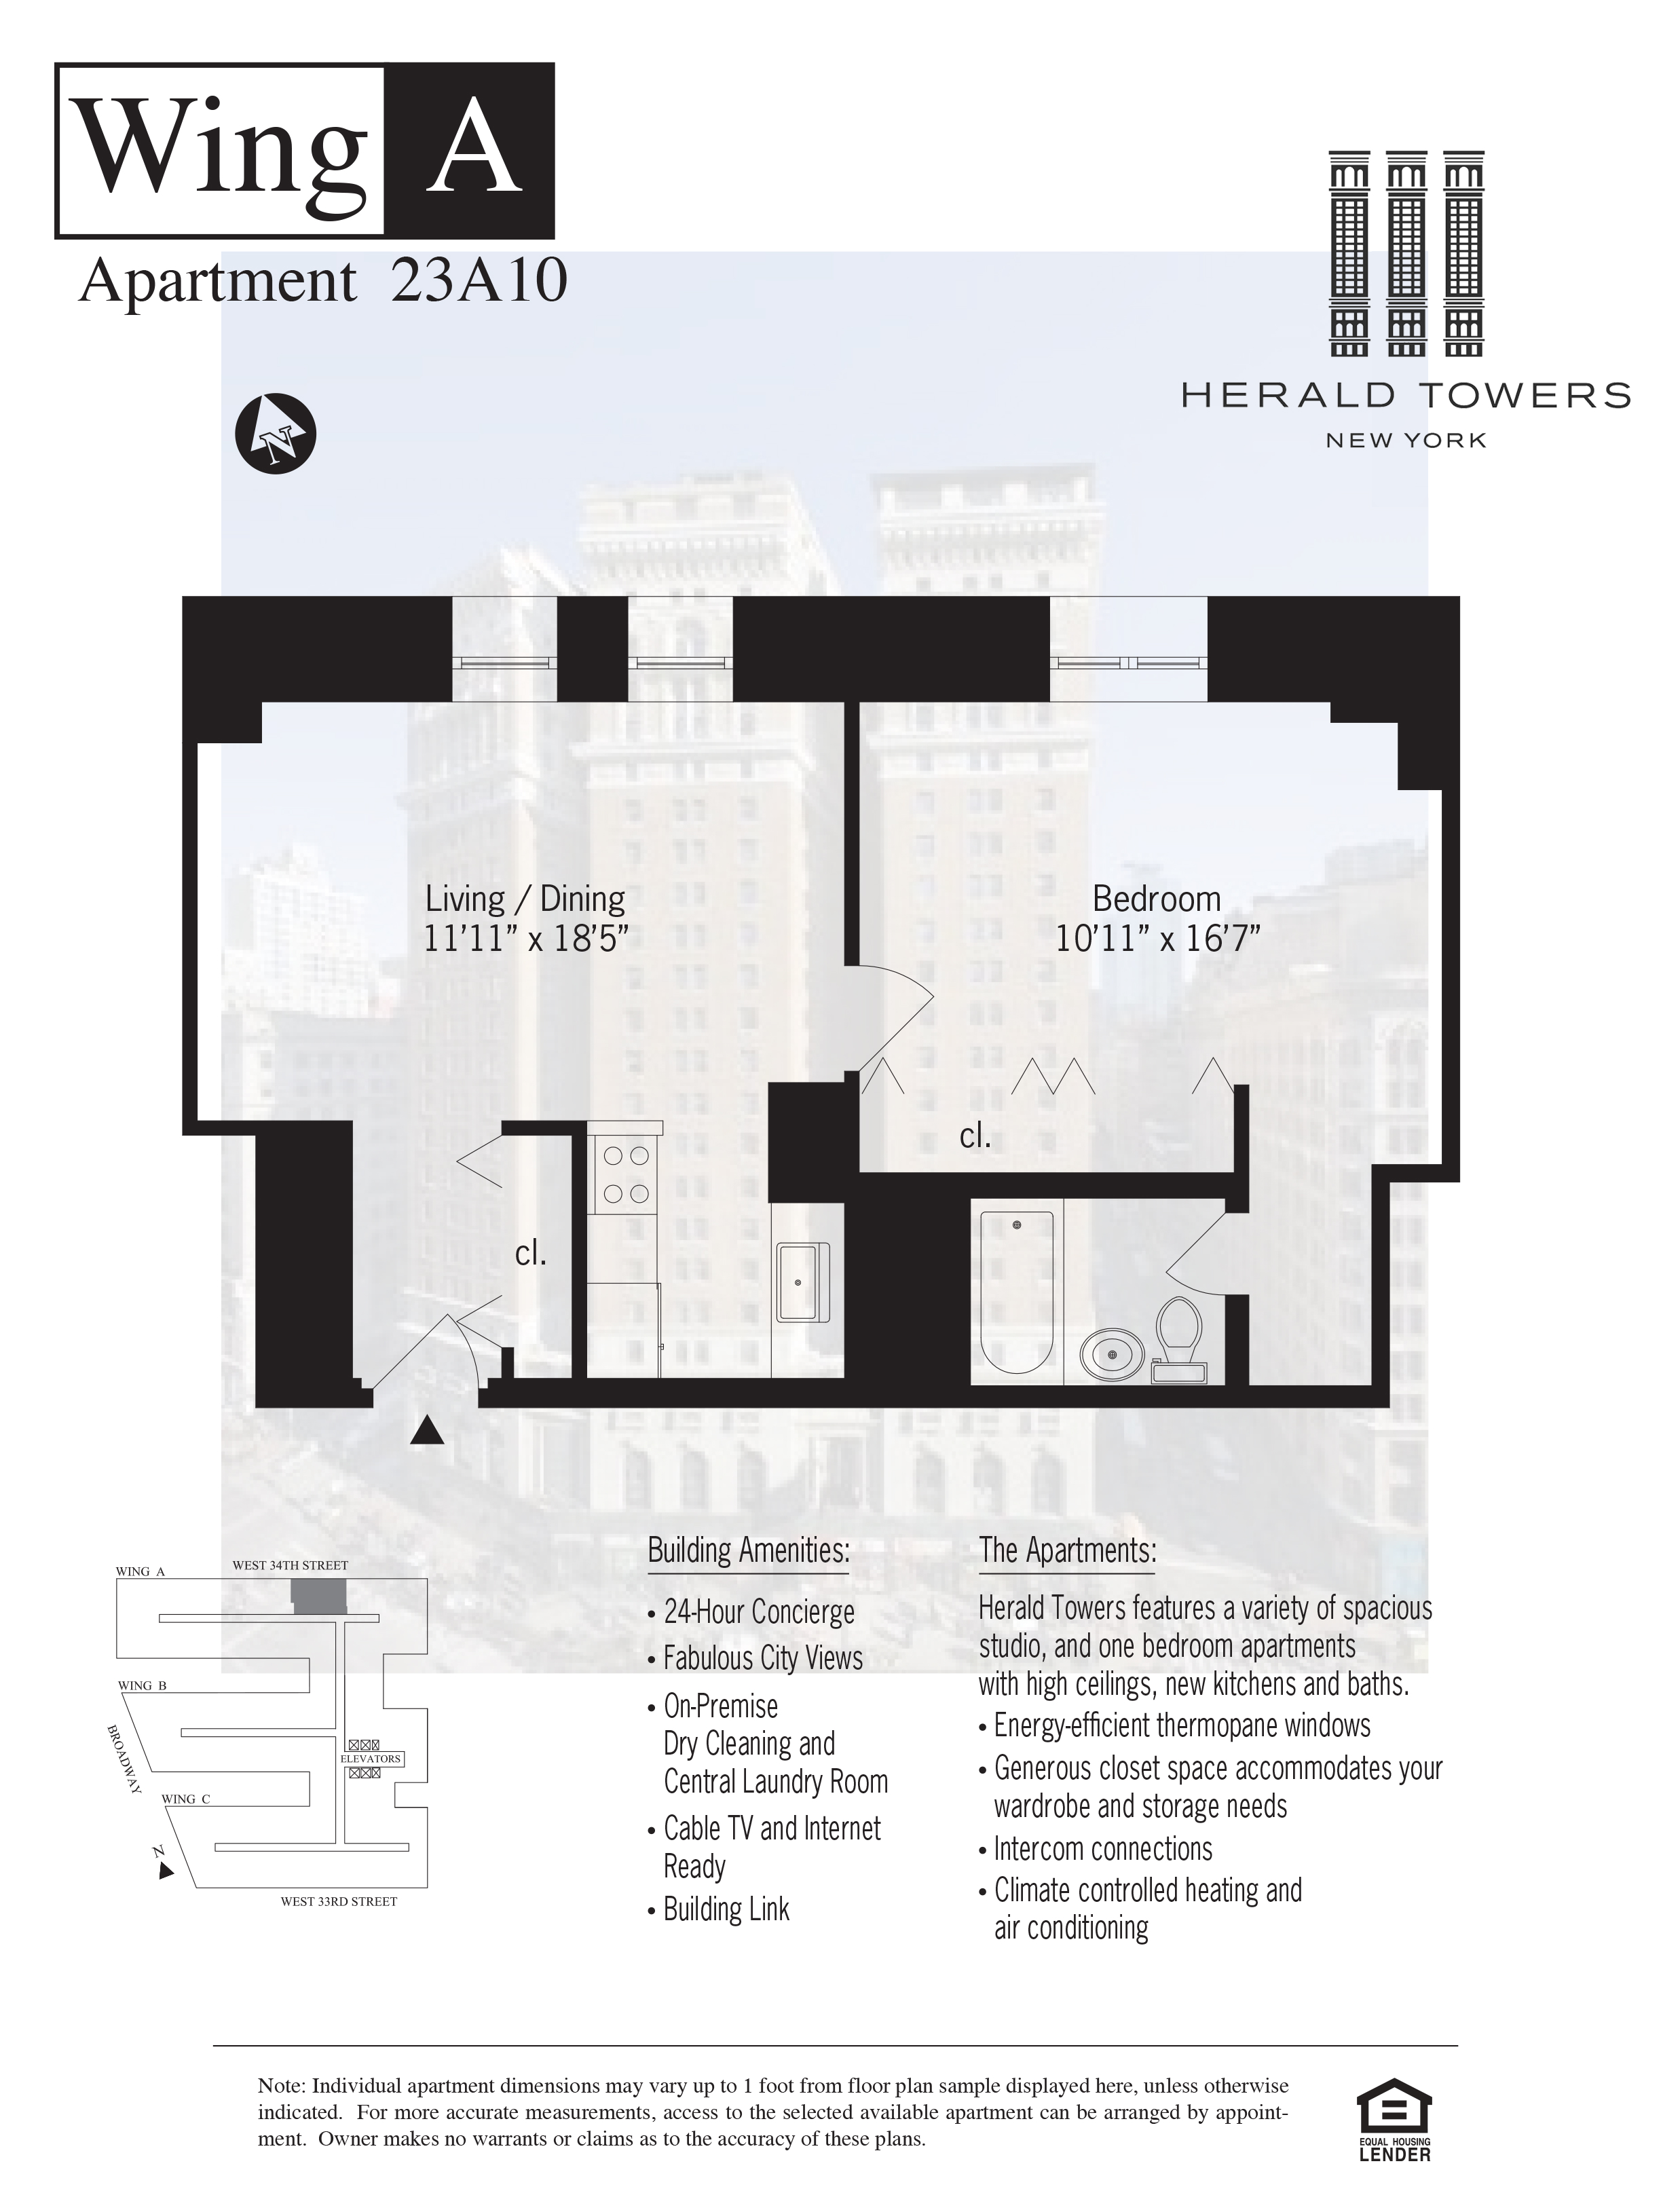 Floor plan for 23A10